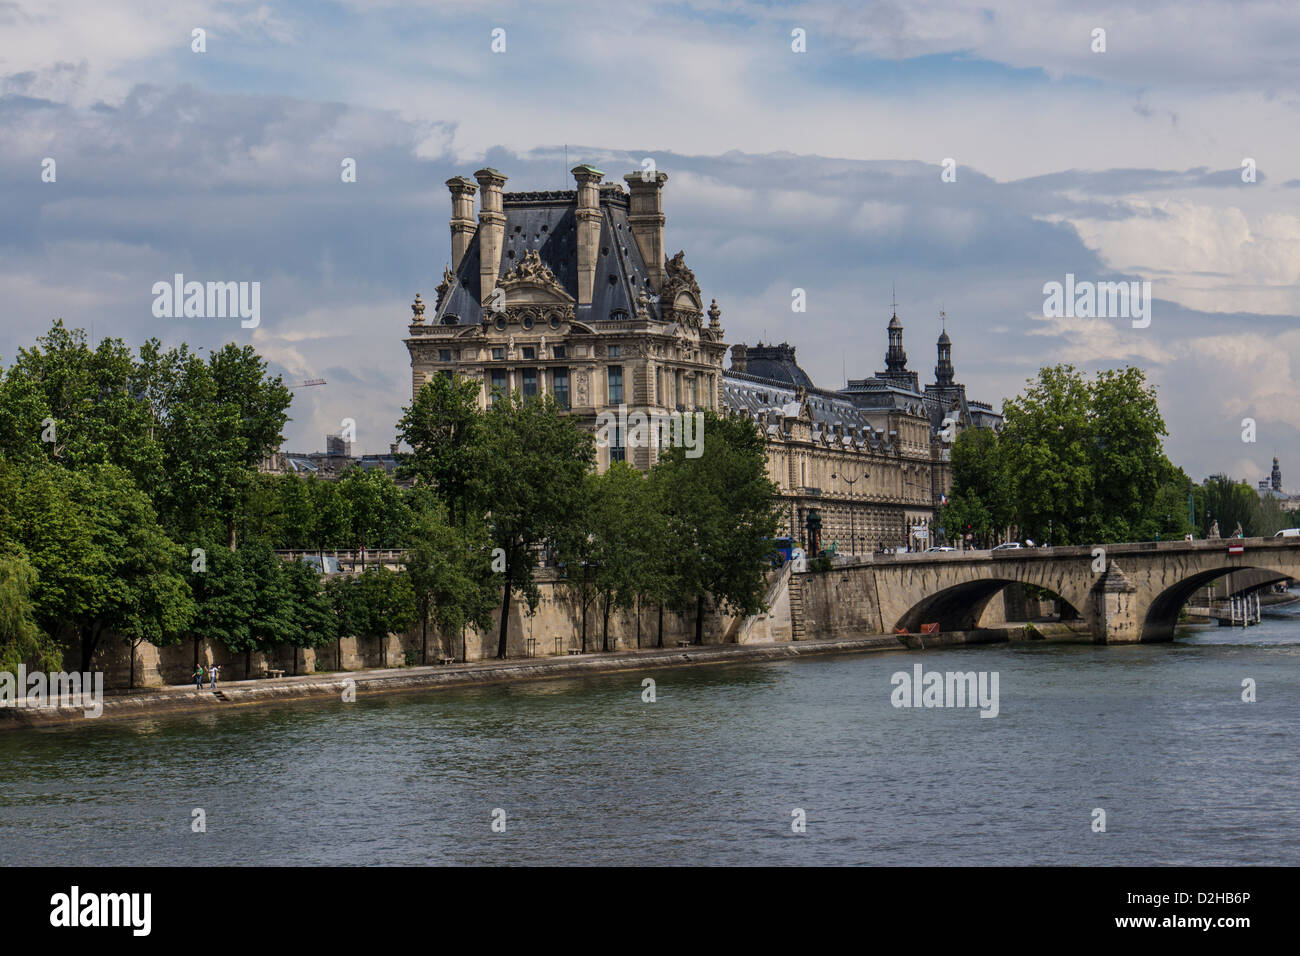 The Louvre Museum in Paris France viewed from the Seine river - Stock Image